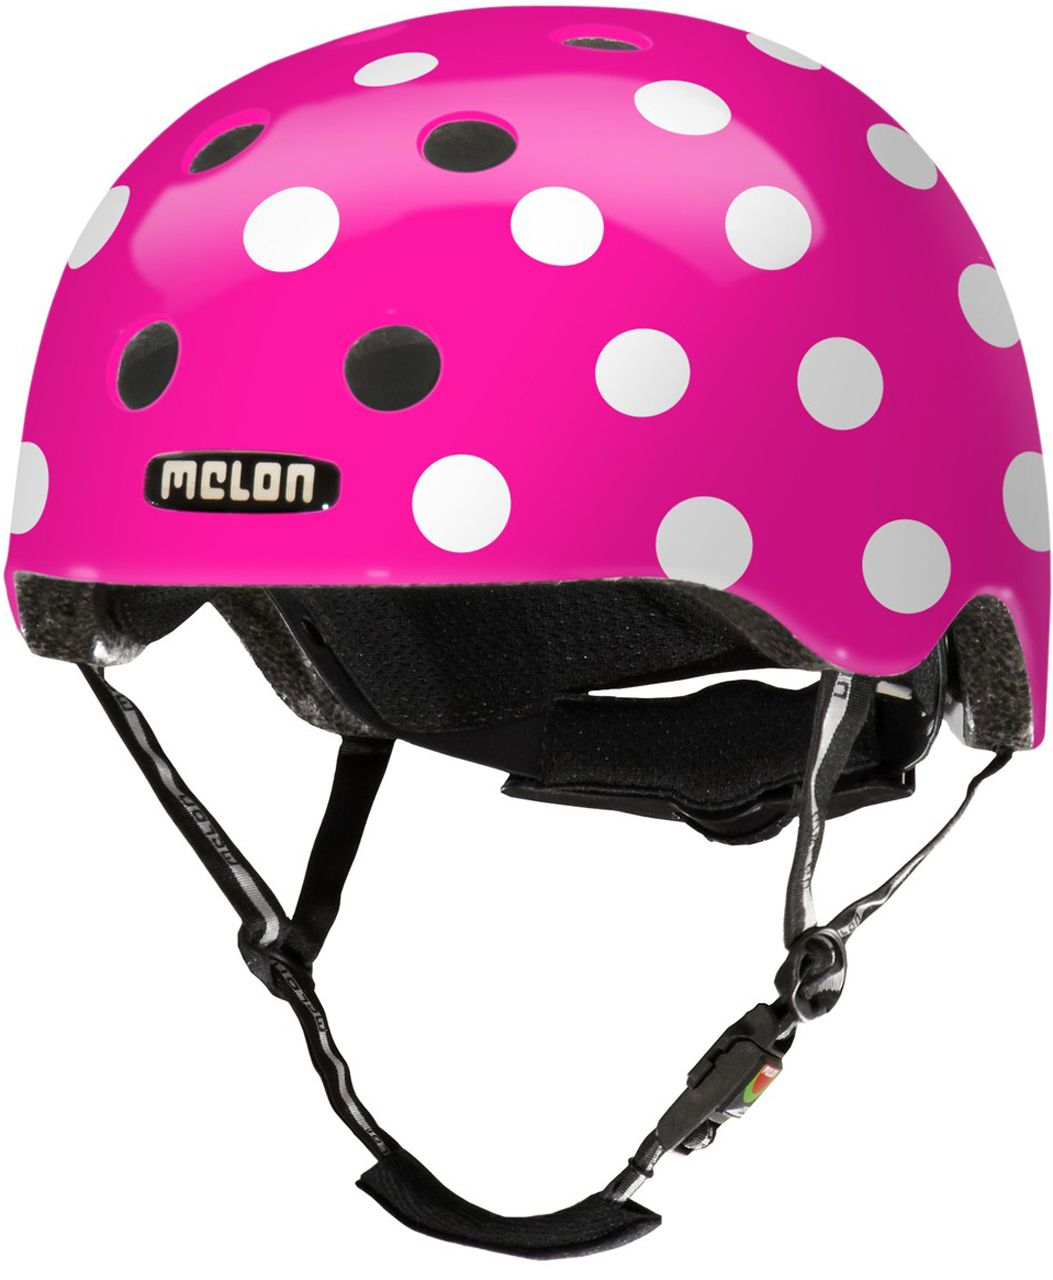 melon helmets kinder fahrradhelm kleine fabriek. Black Bedroom Furniture Sets. Home Design Ideas